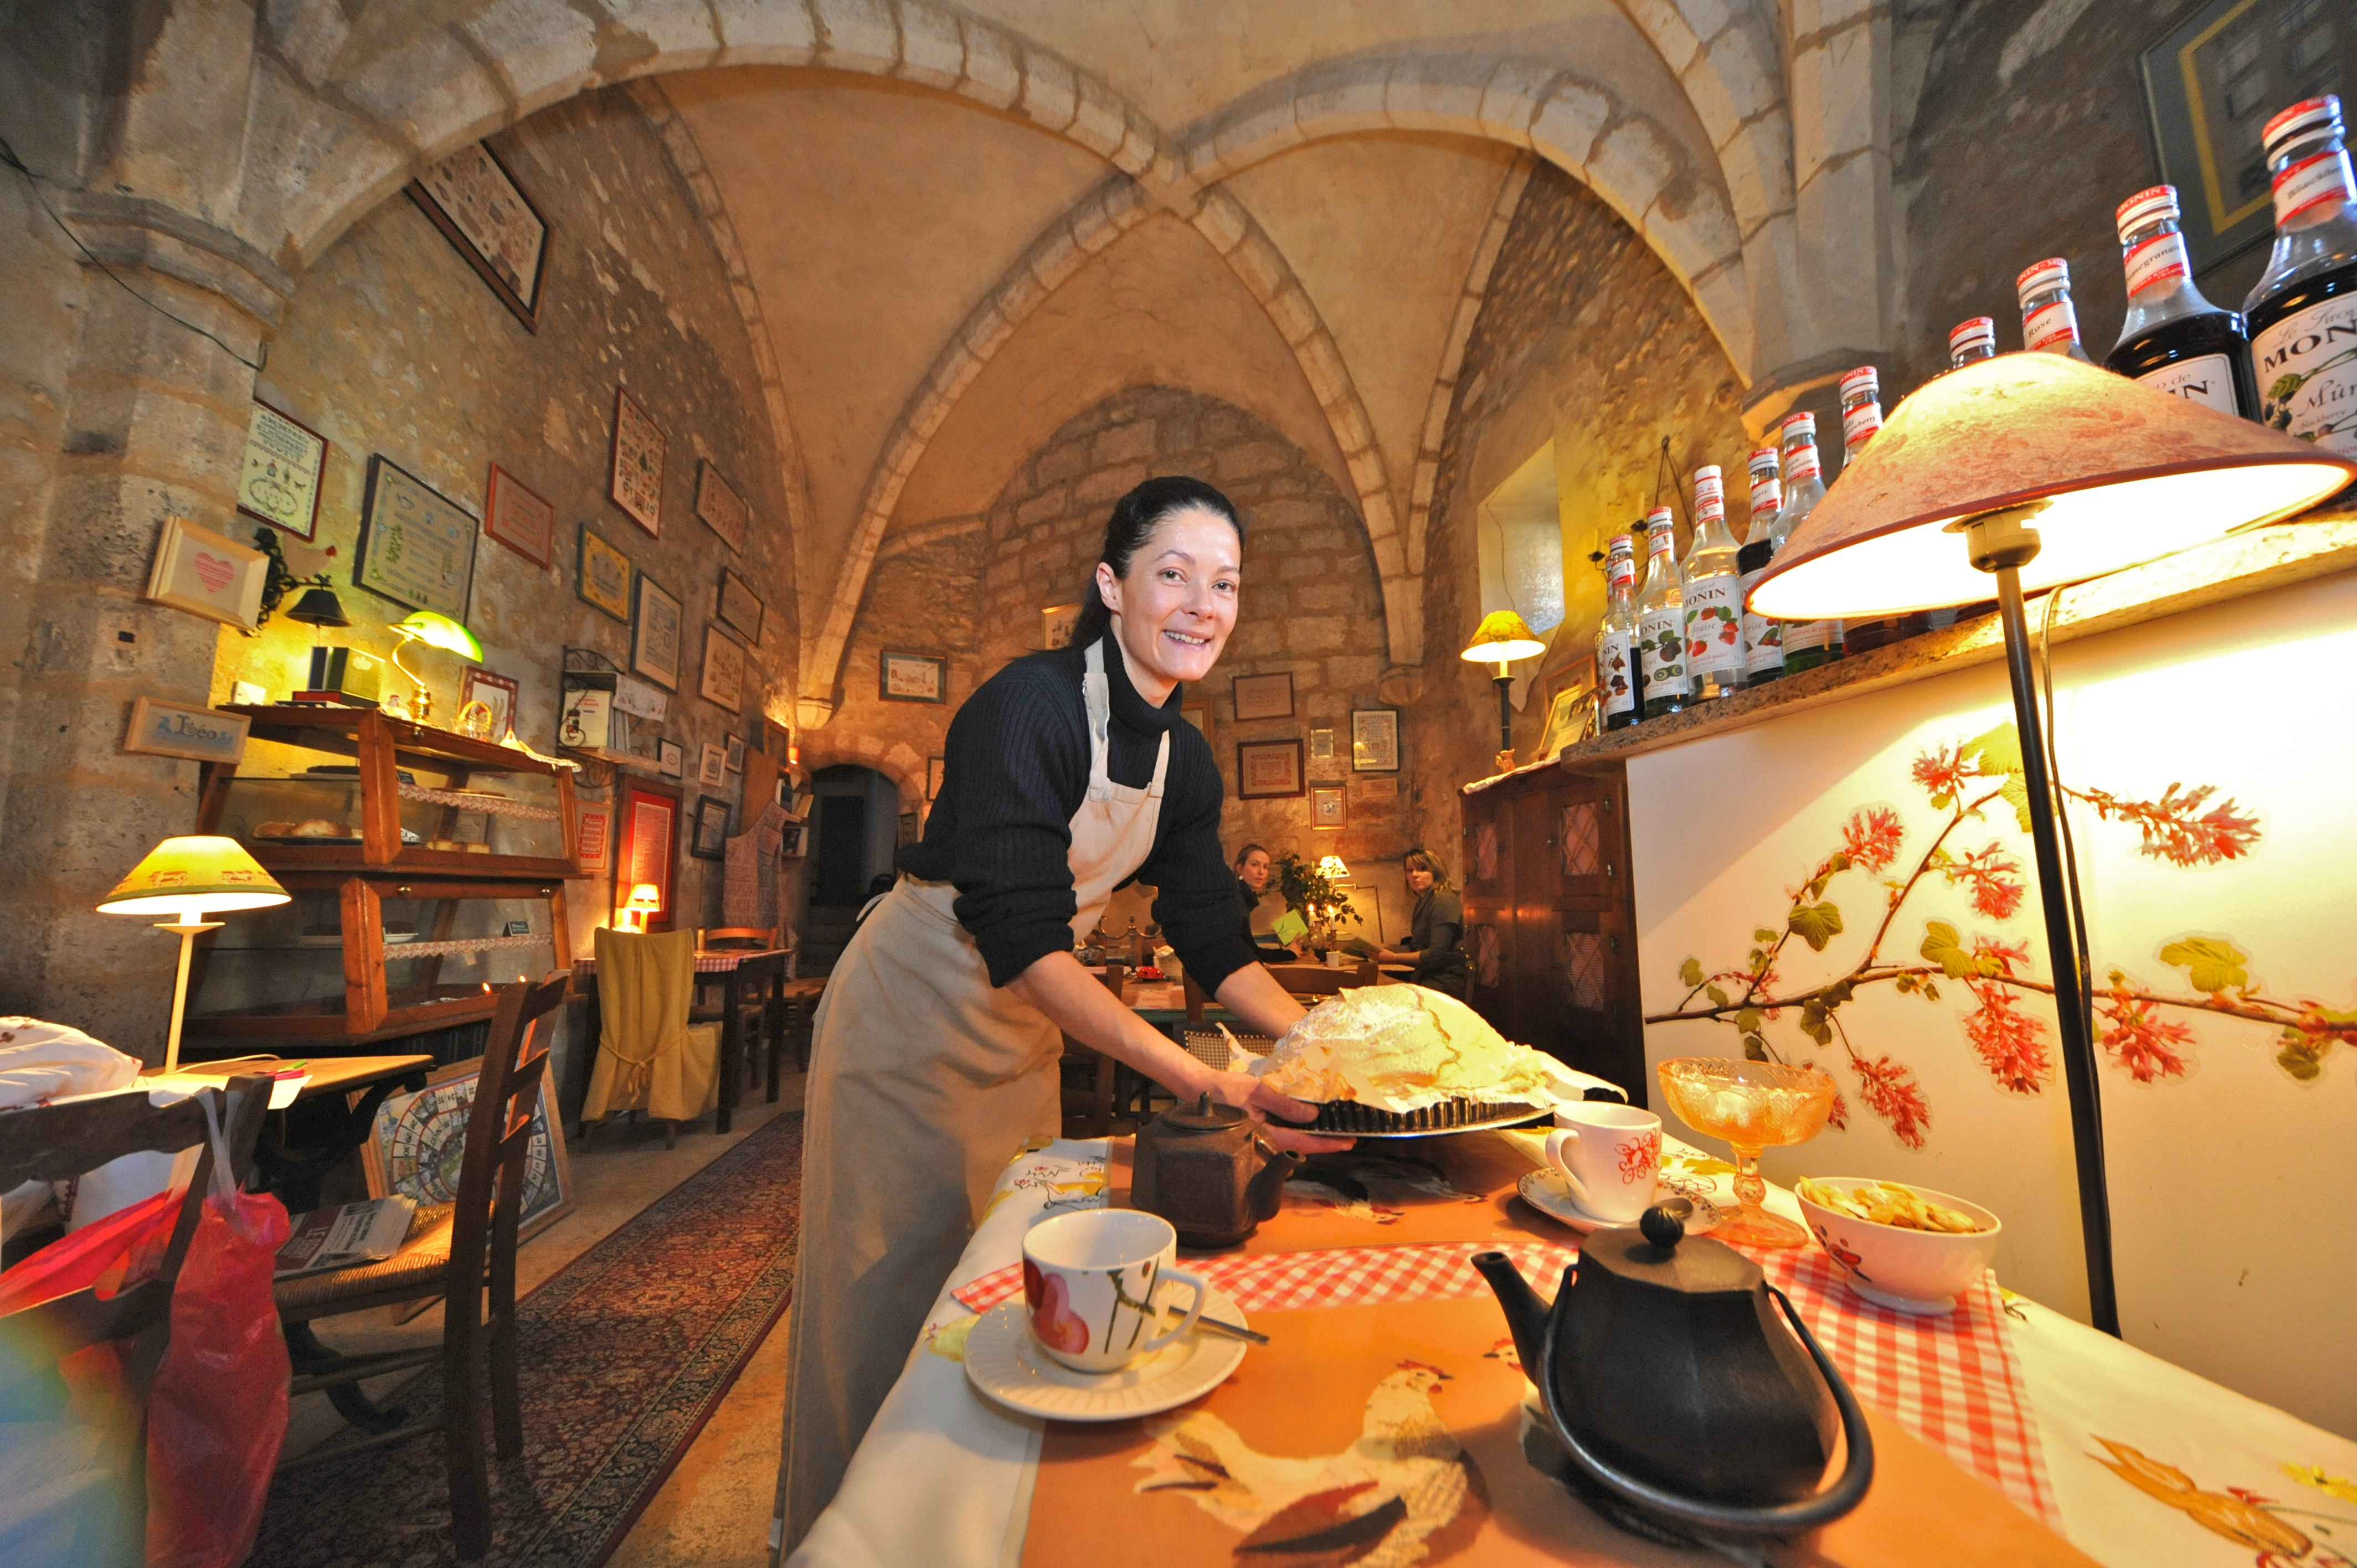 Cake th bourges restaurant berry province - Office de tourisme bourges ...